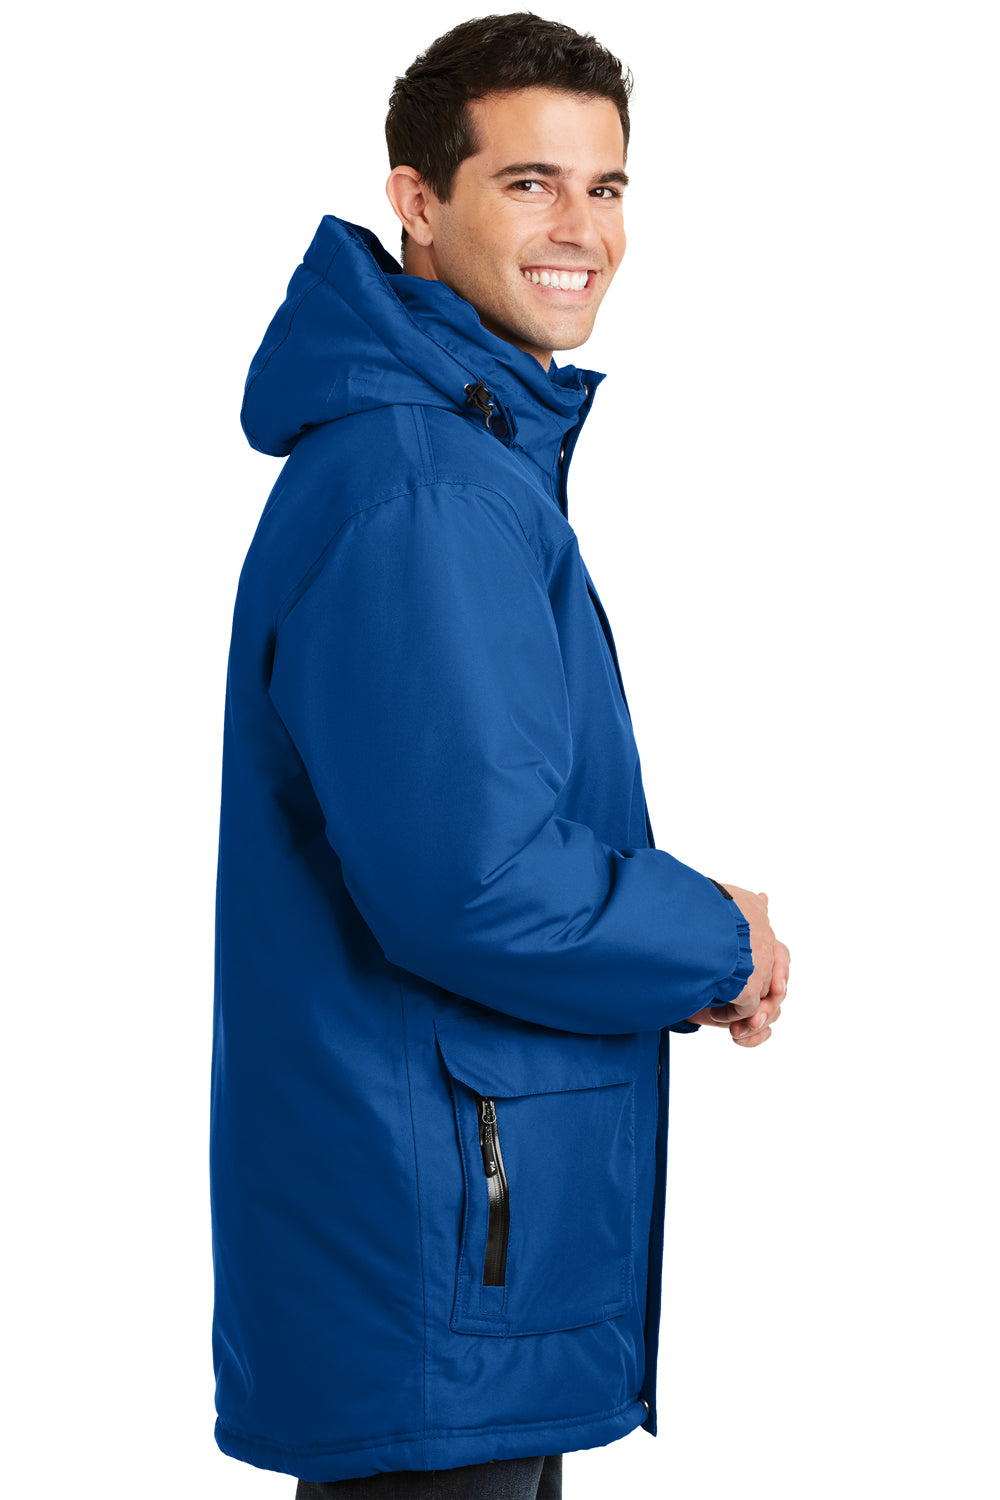 Port Authority J799 Mens Waterproof Full Zip Hooded Jacket Royal Blue Side